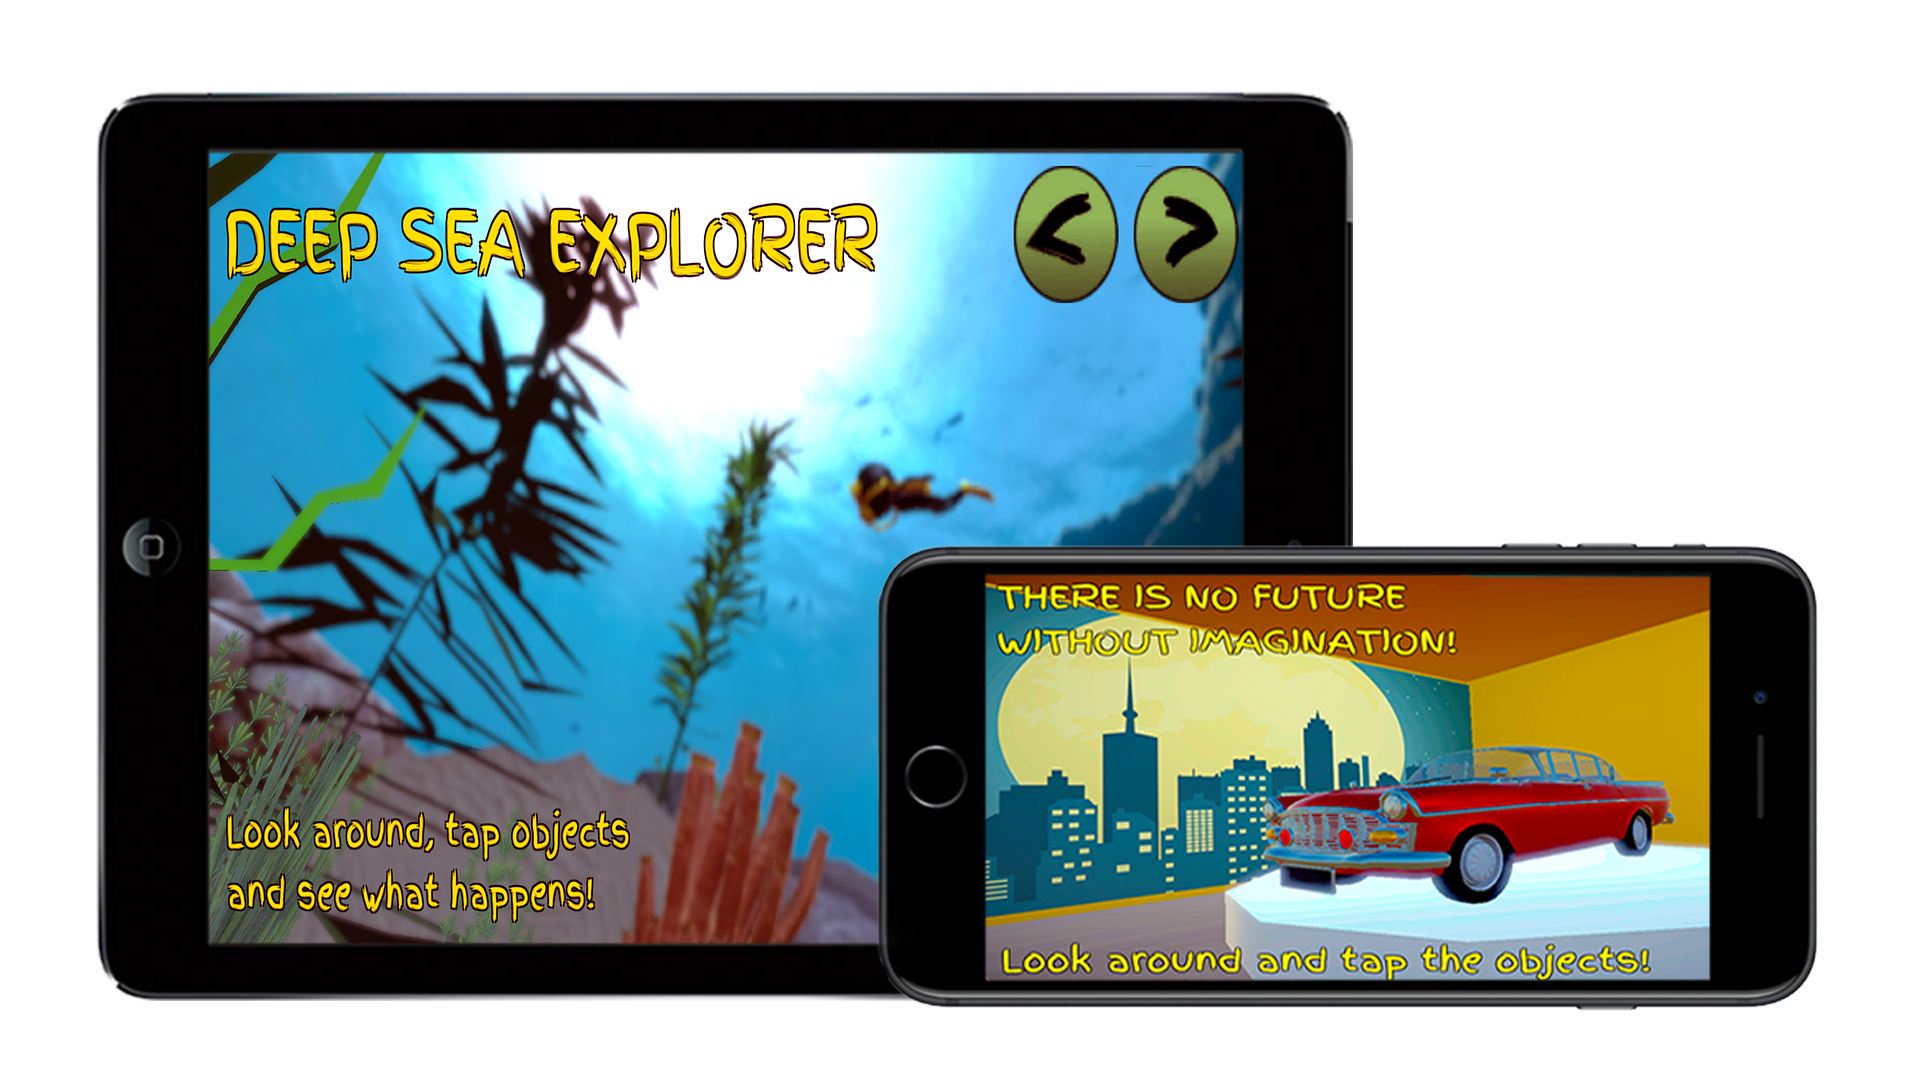 ipad-smartphone-imagination-app-preview